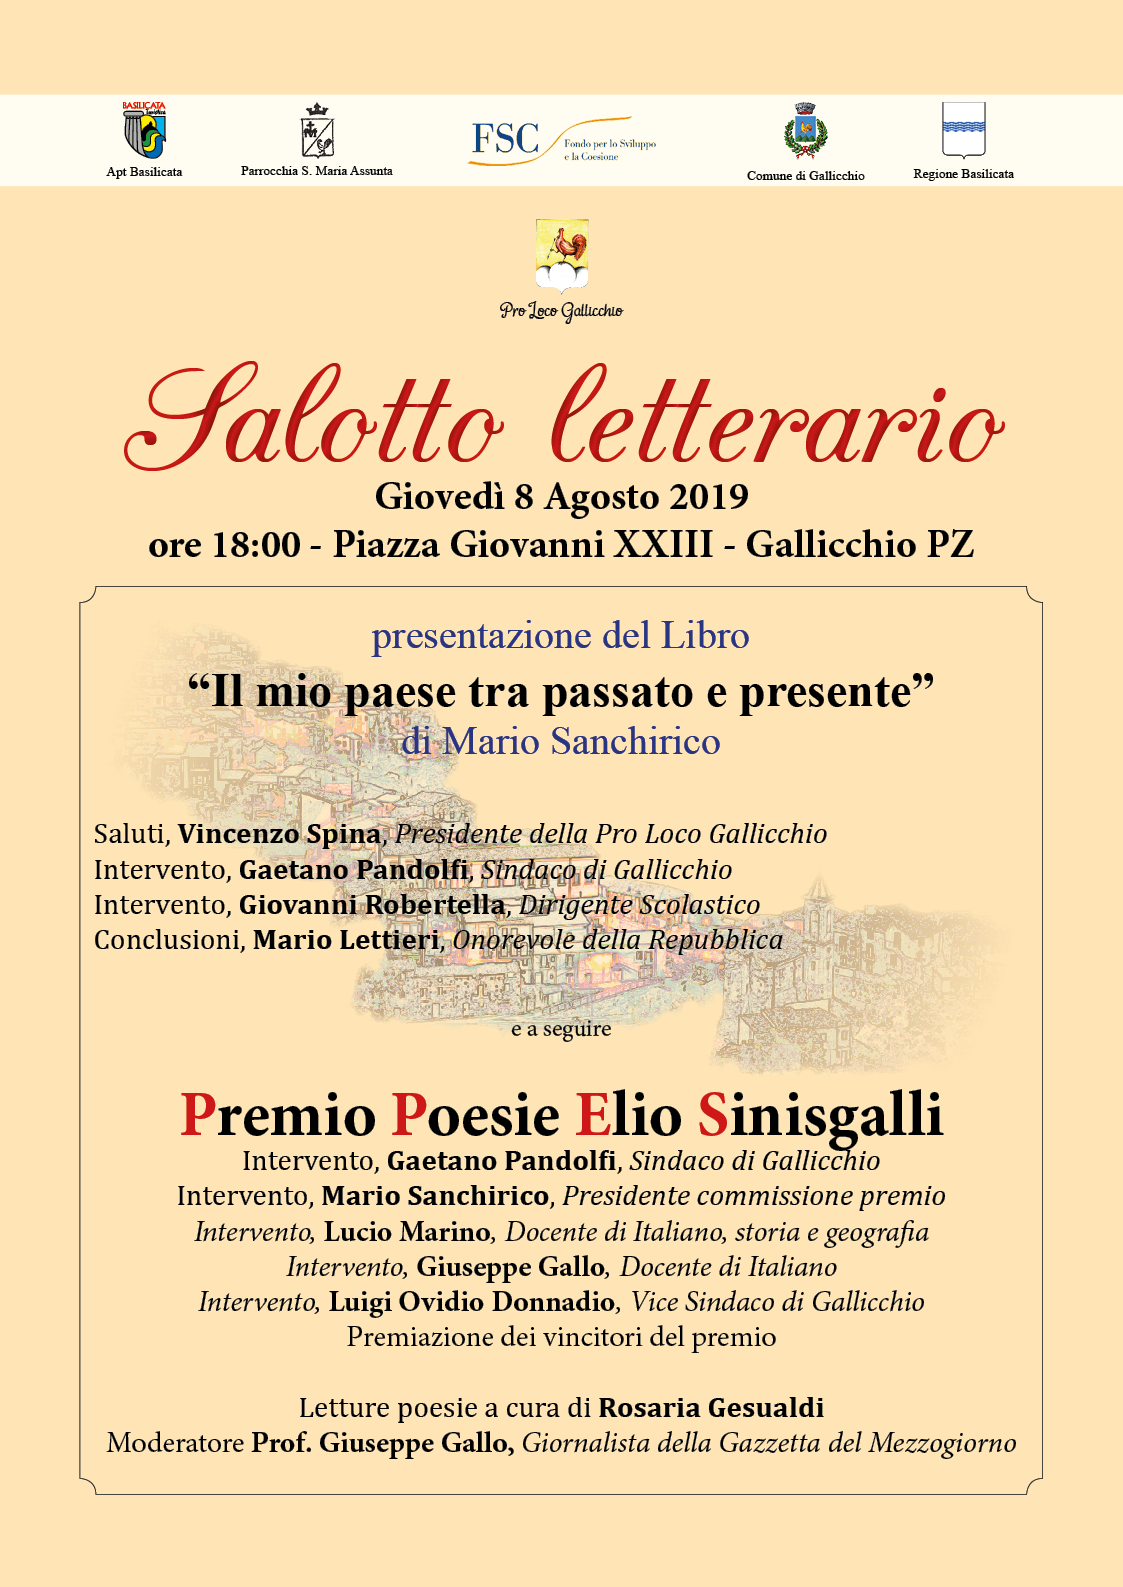 Estate Gallicchiese 2019 2